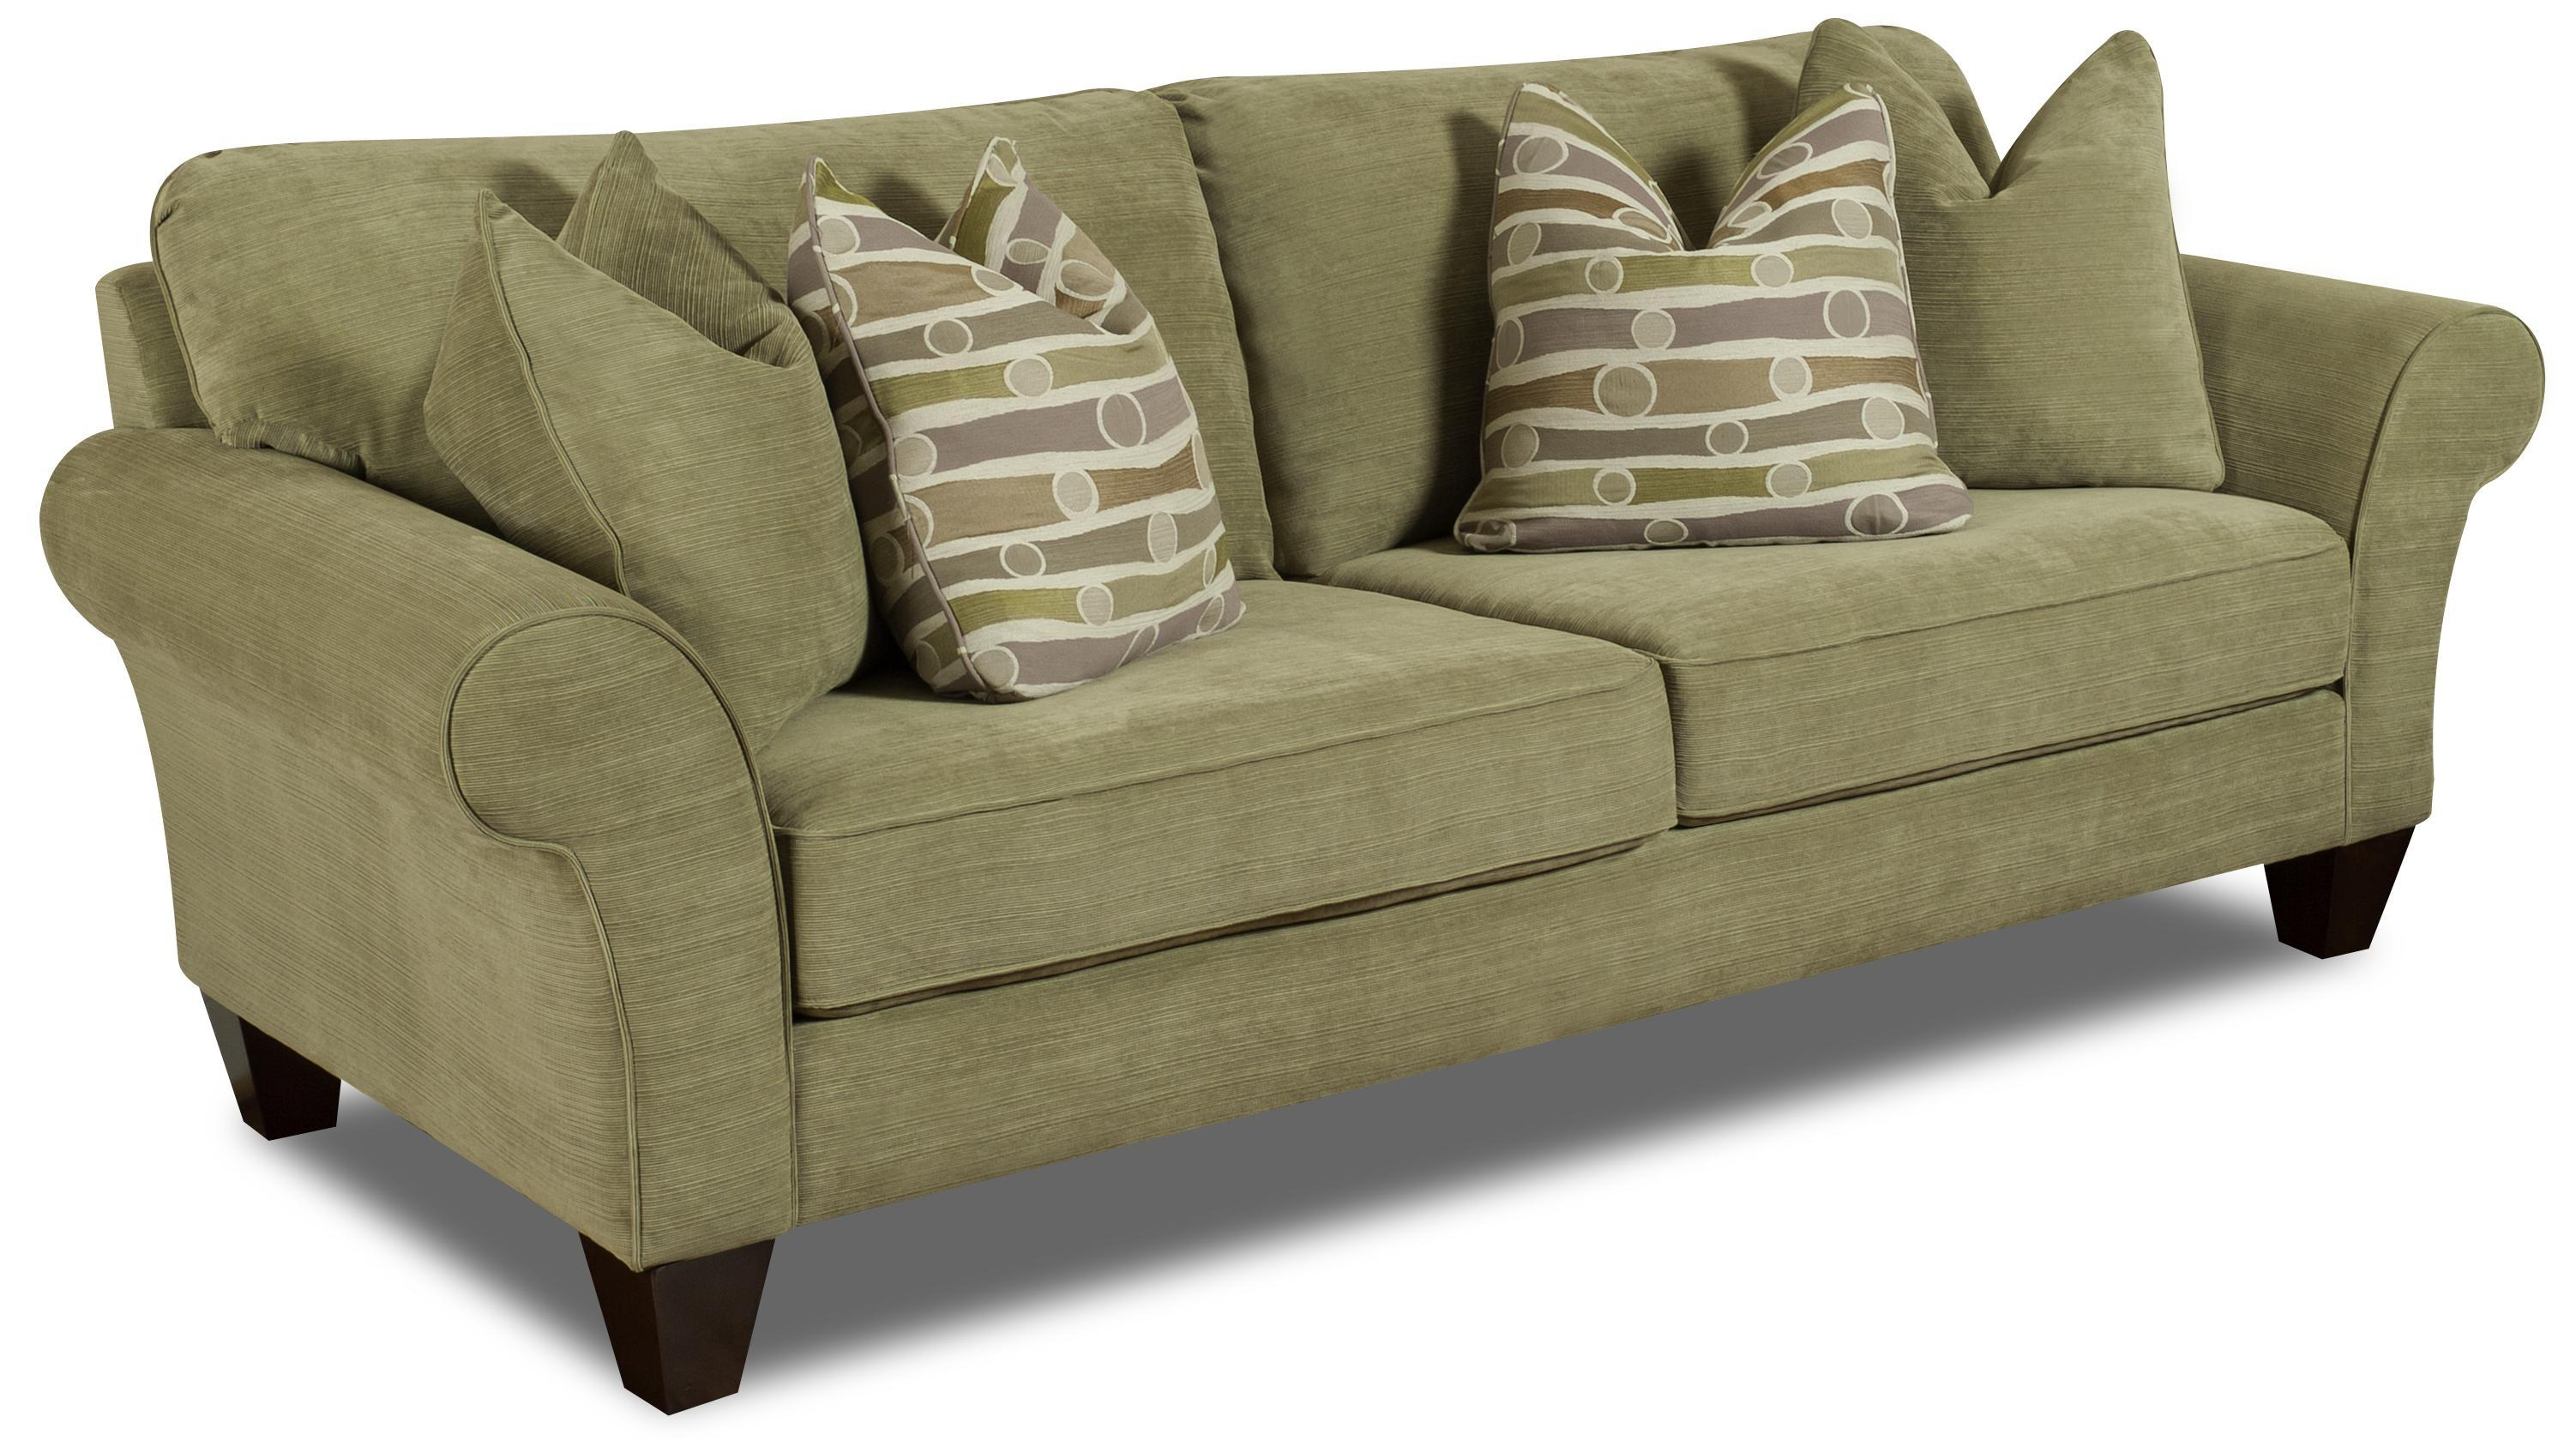 Furniture: Sectional Couch Craigslist | Sectional Sofas Mn In Craigslist Sectional Sofas (Image 4 of 20)